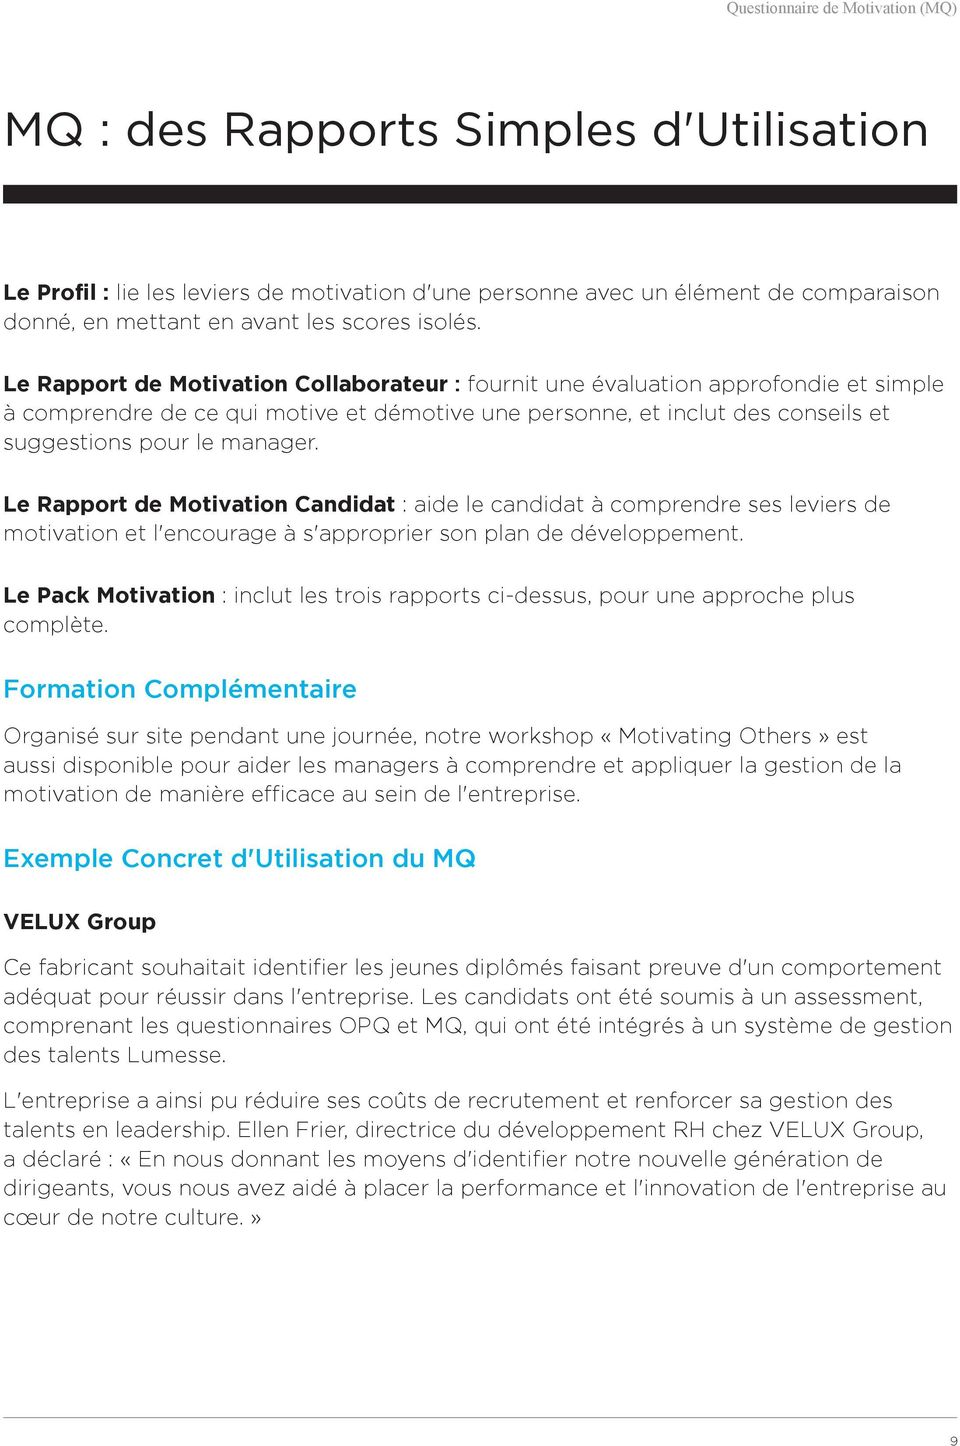 Le Rapport de Motivation Collaborateur : fournit une évaluation approfondie et simple à comprendre de ce qui motive et démotive une personne, et inclut des conseils et suggestions pour le manager.